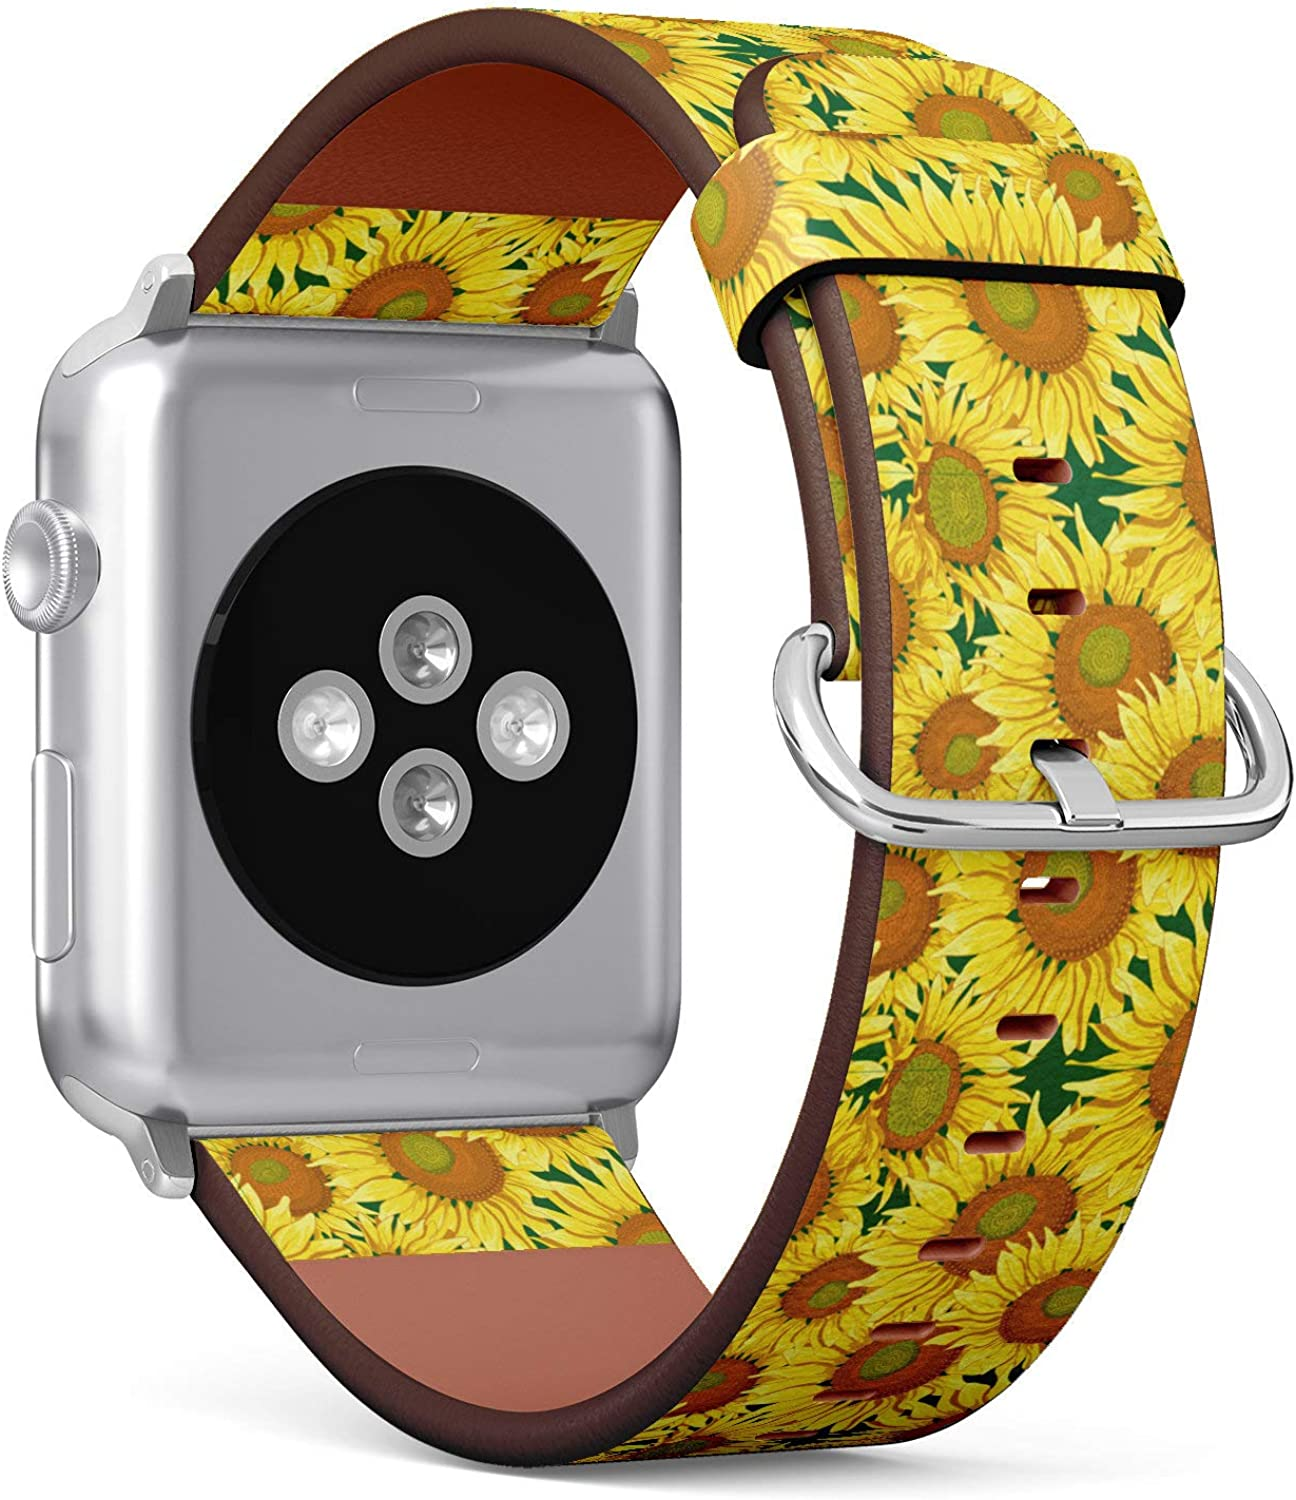 (Oil Painting Sunflower Pattern) Patterned Leather Wristband Strap for Apple Watch Series 4/3/2/1 gen,Replacement for iWatch 38mm / 40mm Bands